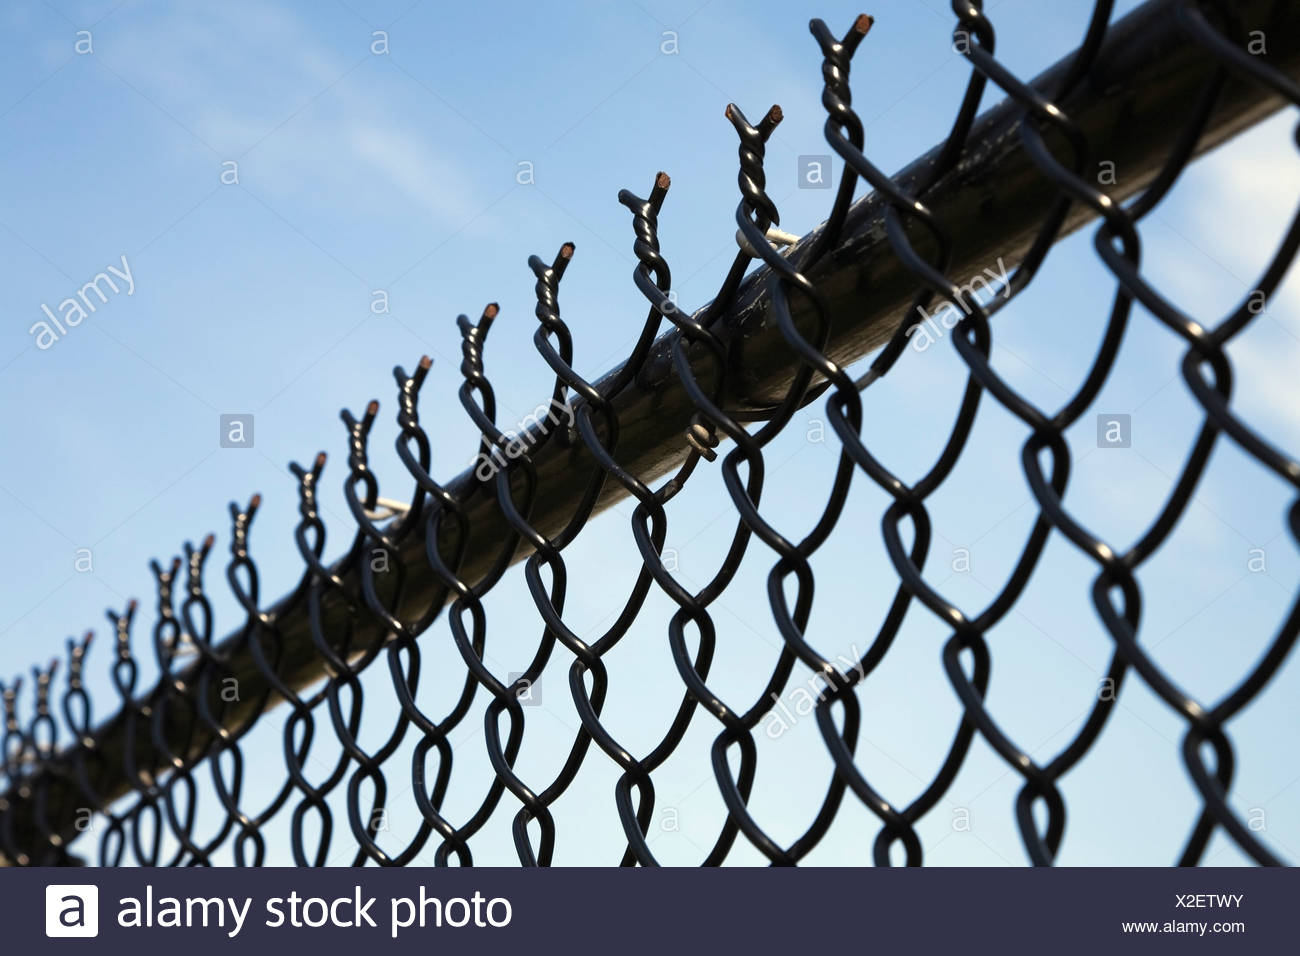 Barb wire security fence - Stock Image